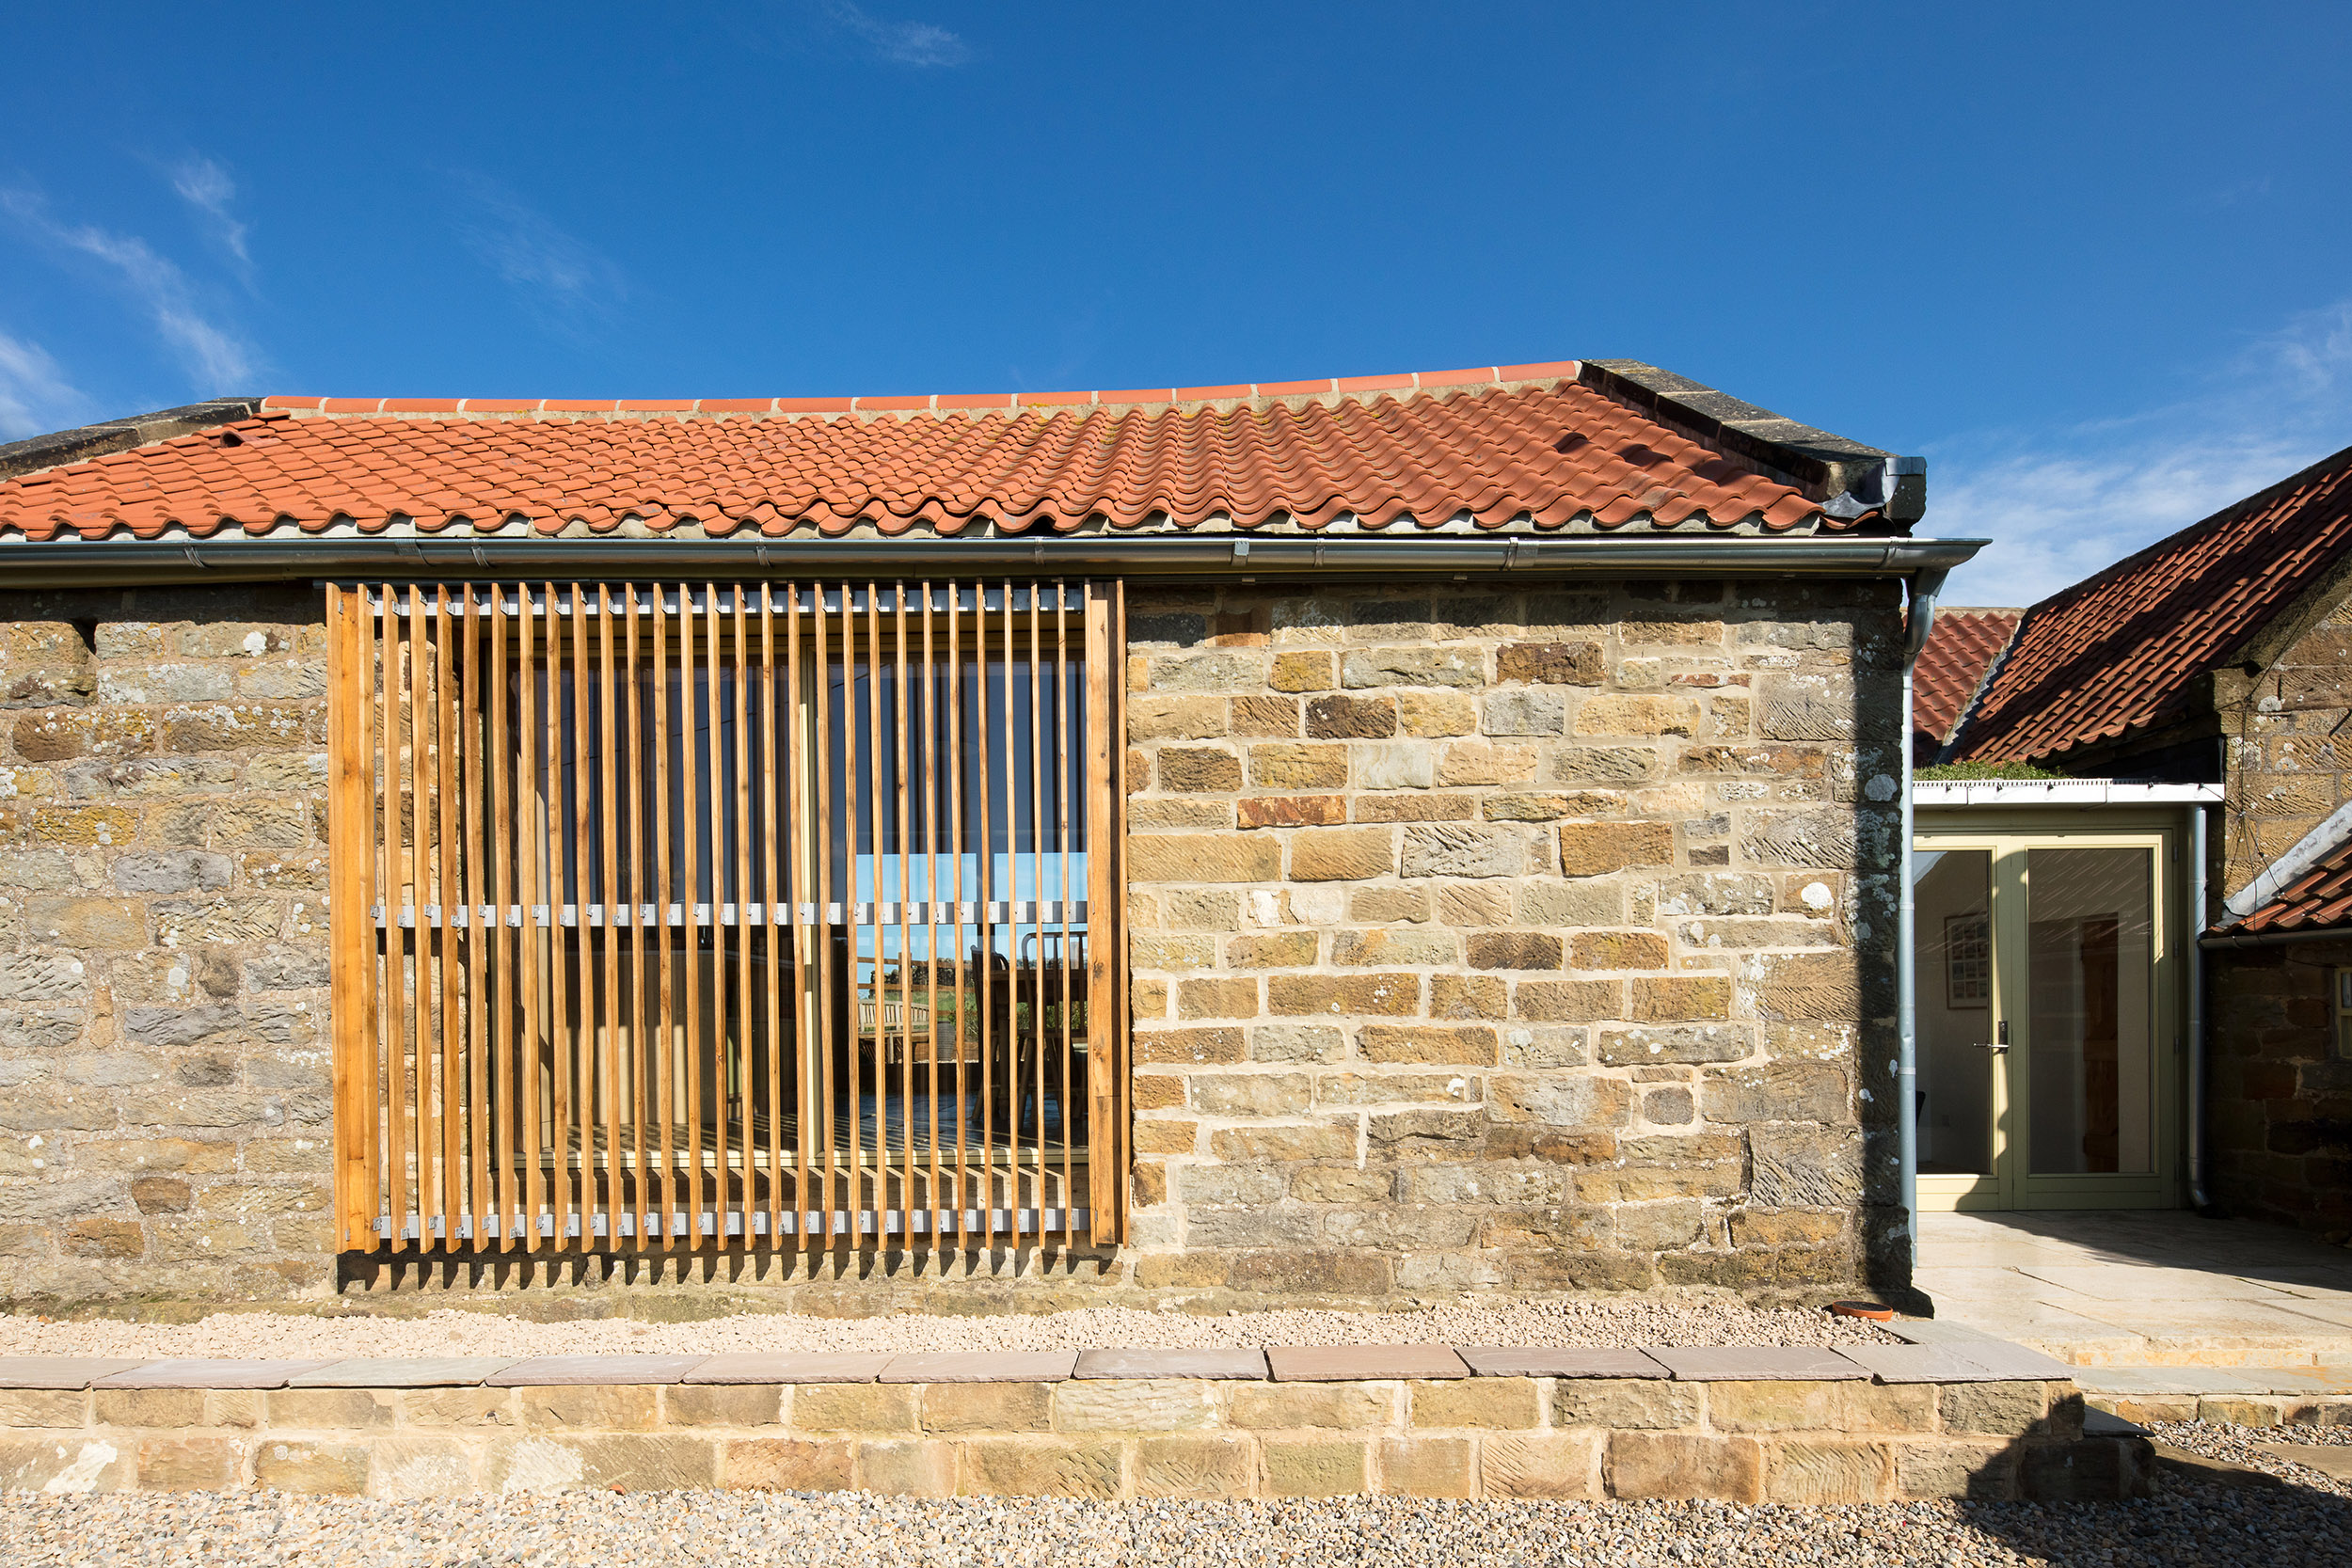 harper-perry-architects-housing-barn-westerdale-north-yorkshire-sliding-screen-closed